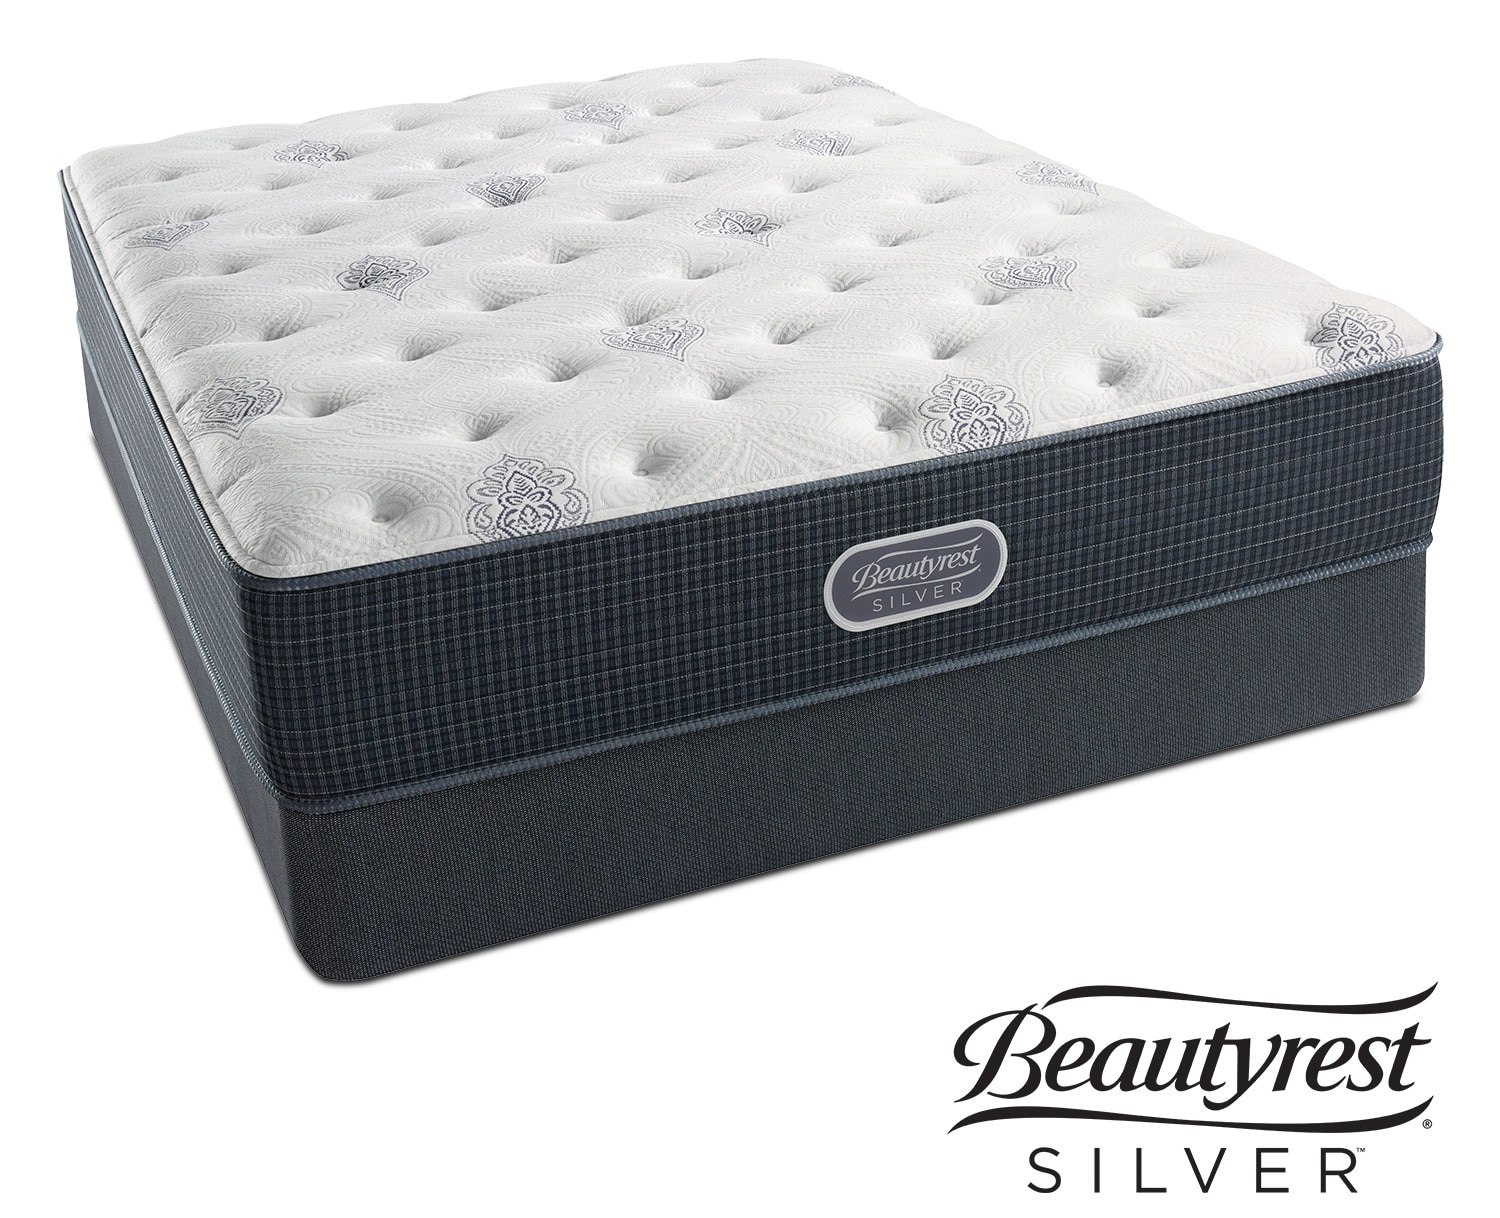 Mattresses and Bedding - White River Luxury Firm Twin XL Mattress and Foundation Set